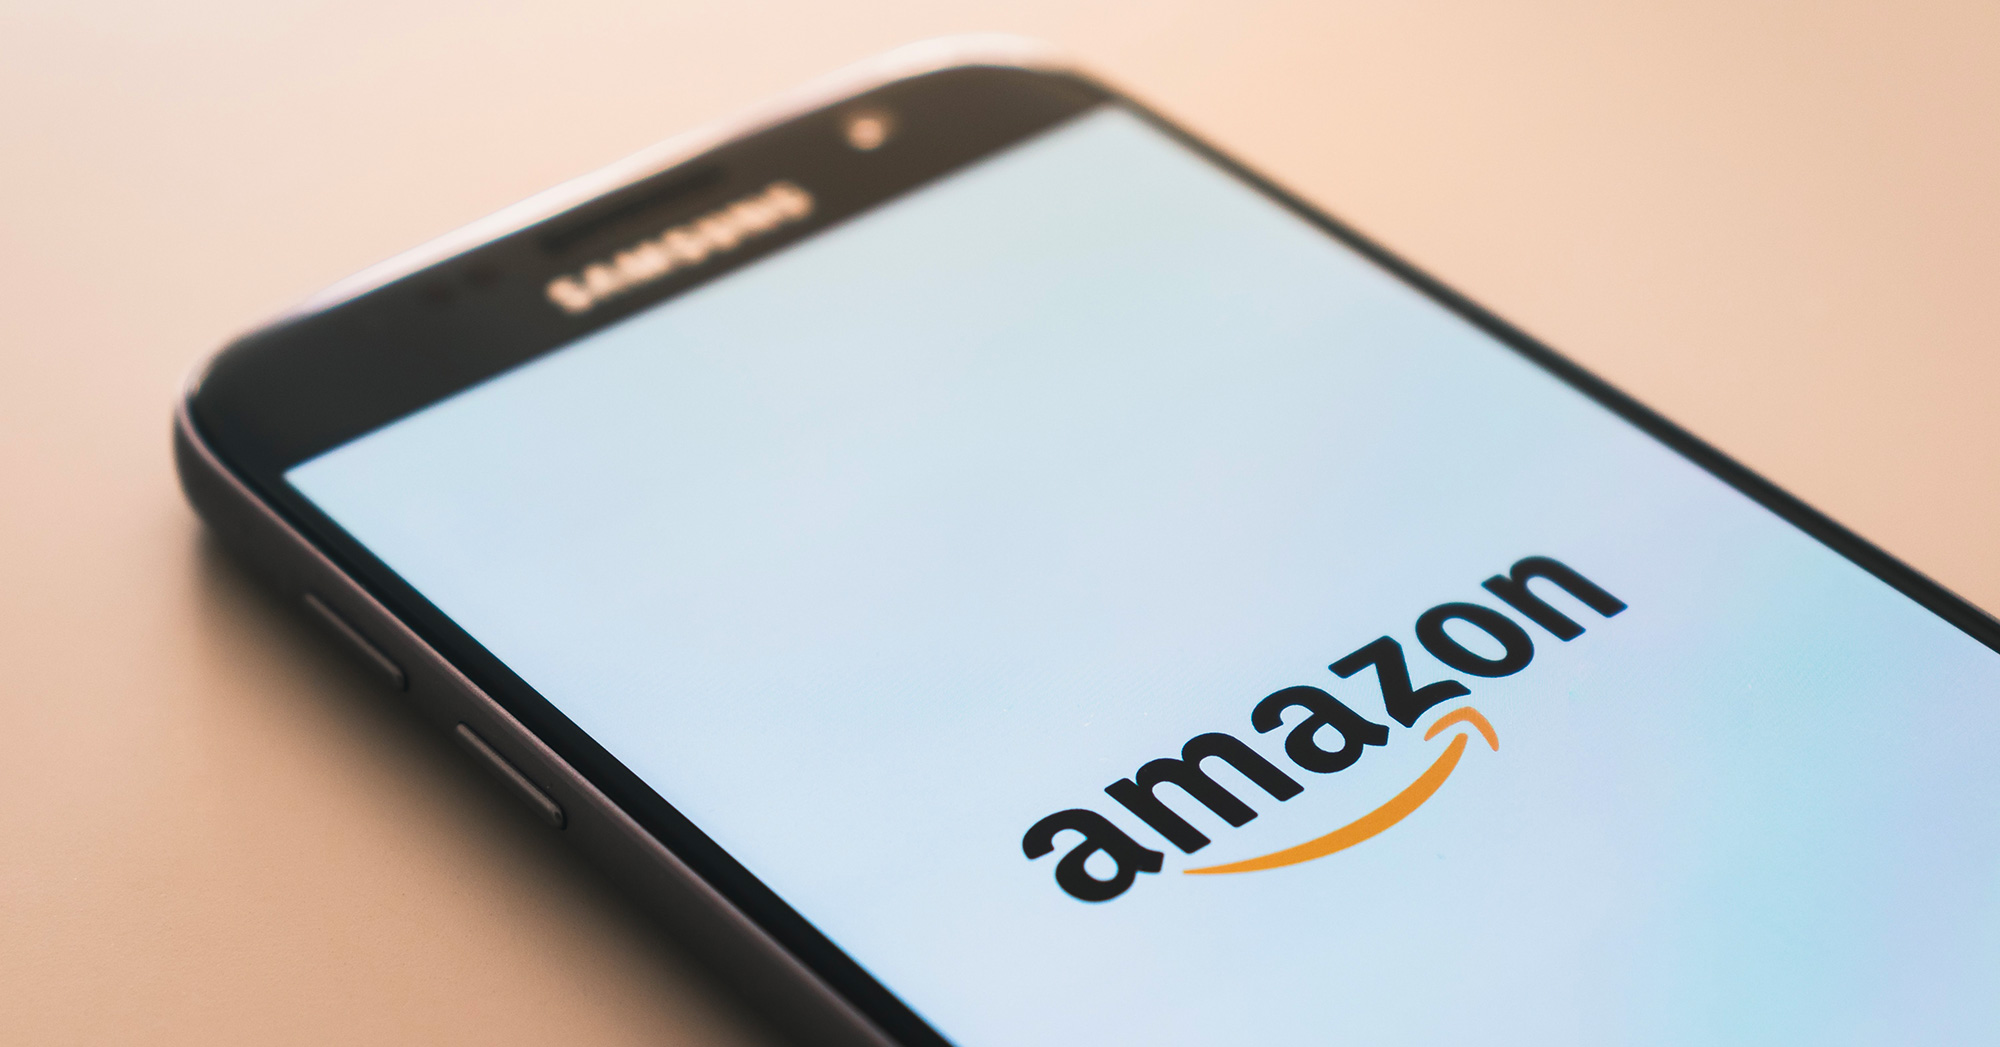 Smartphone con logo Amazon